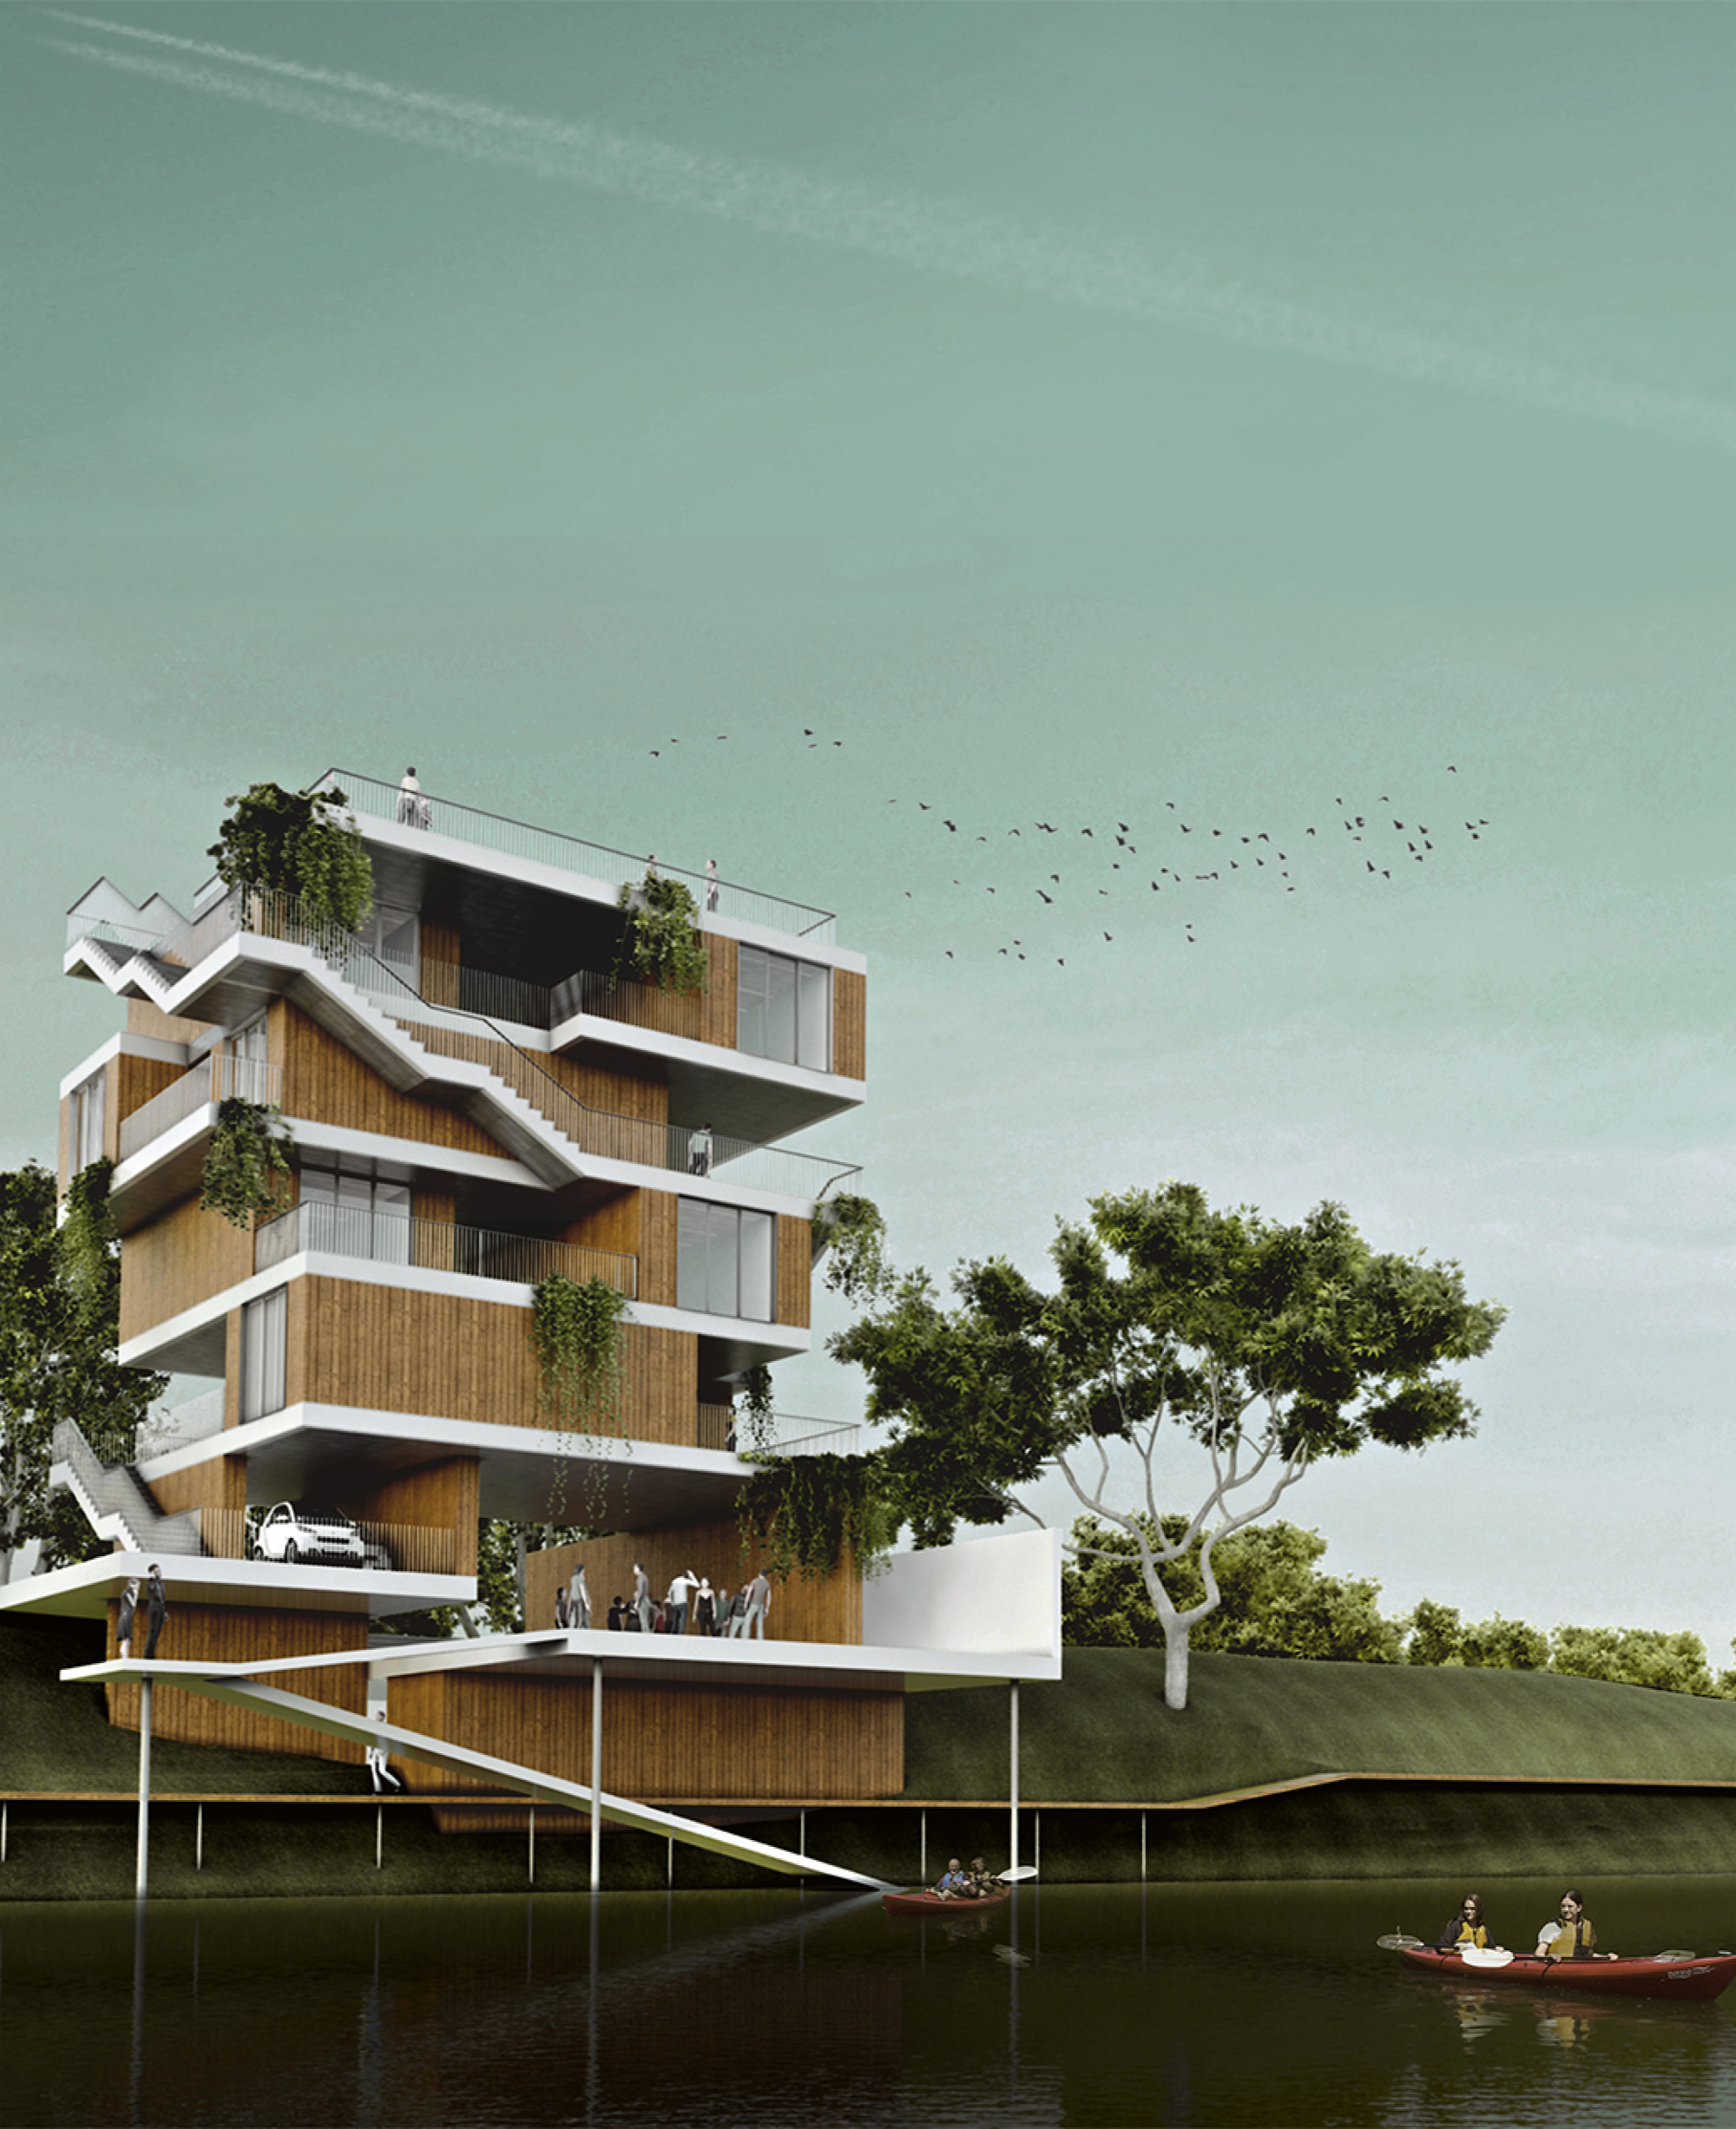 Housing Ideas Gallery Of Micro Housing Ideas Competition 2013 Winners Announced  3